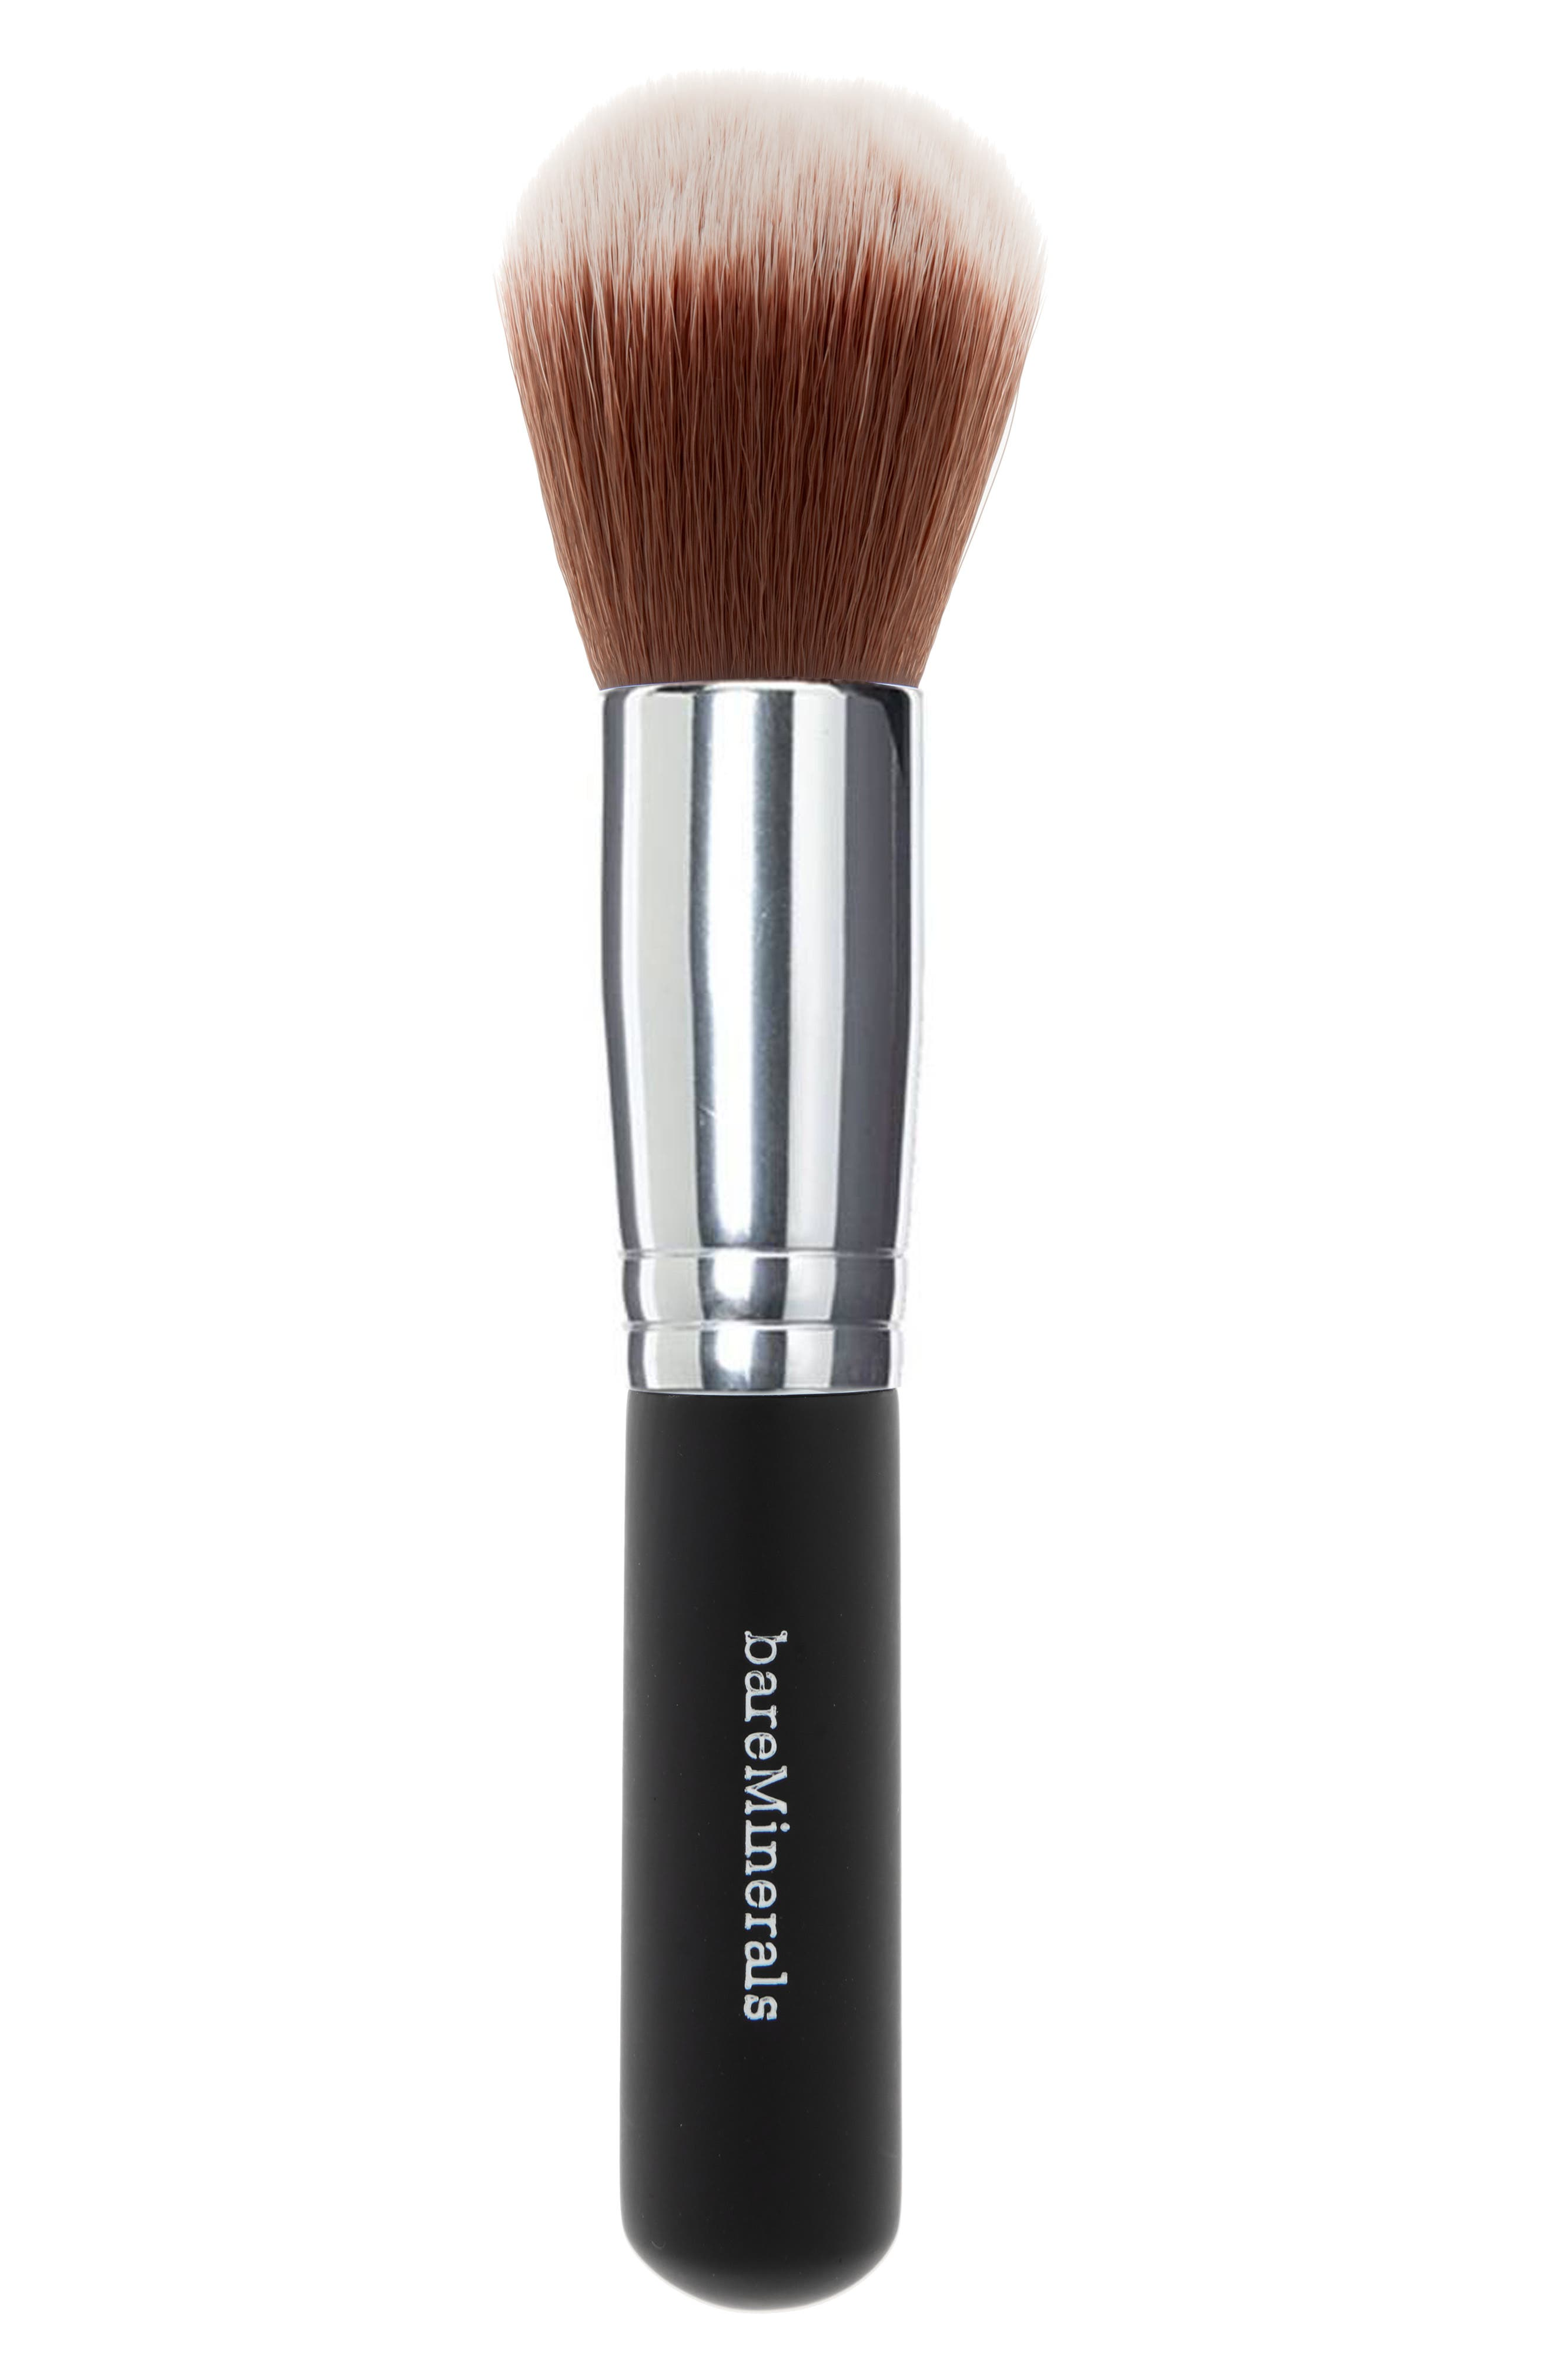 Soft Focus Face Brush,                             Alternate thumbnail 2, color,                             000